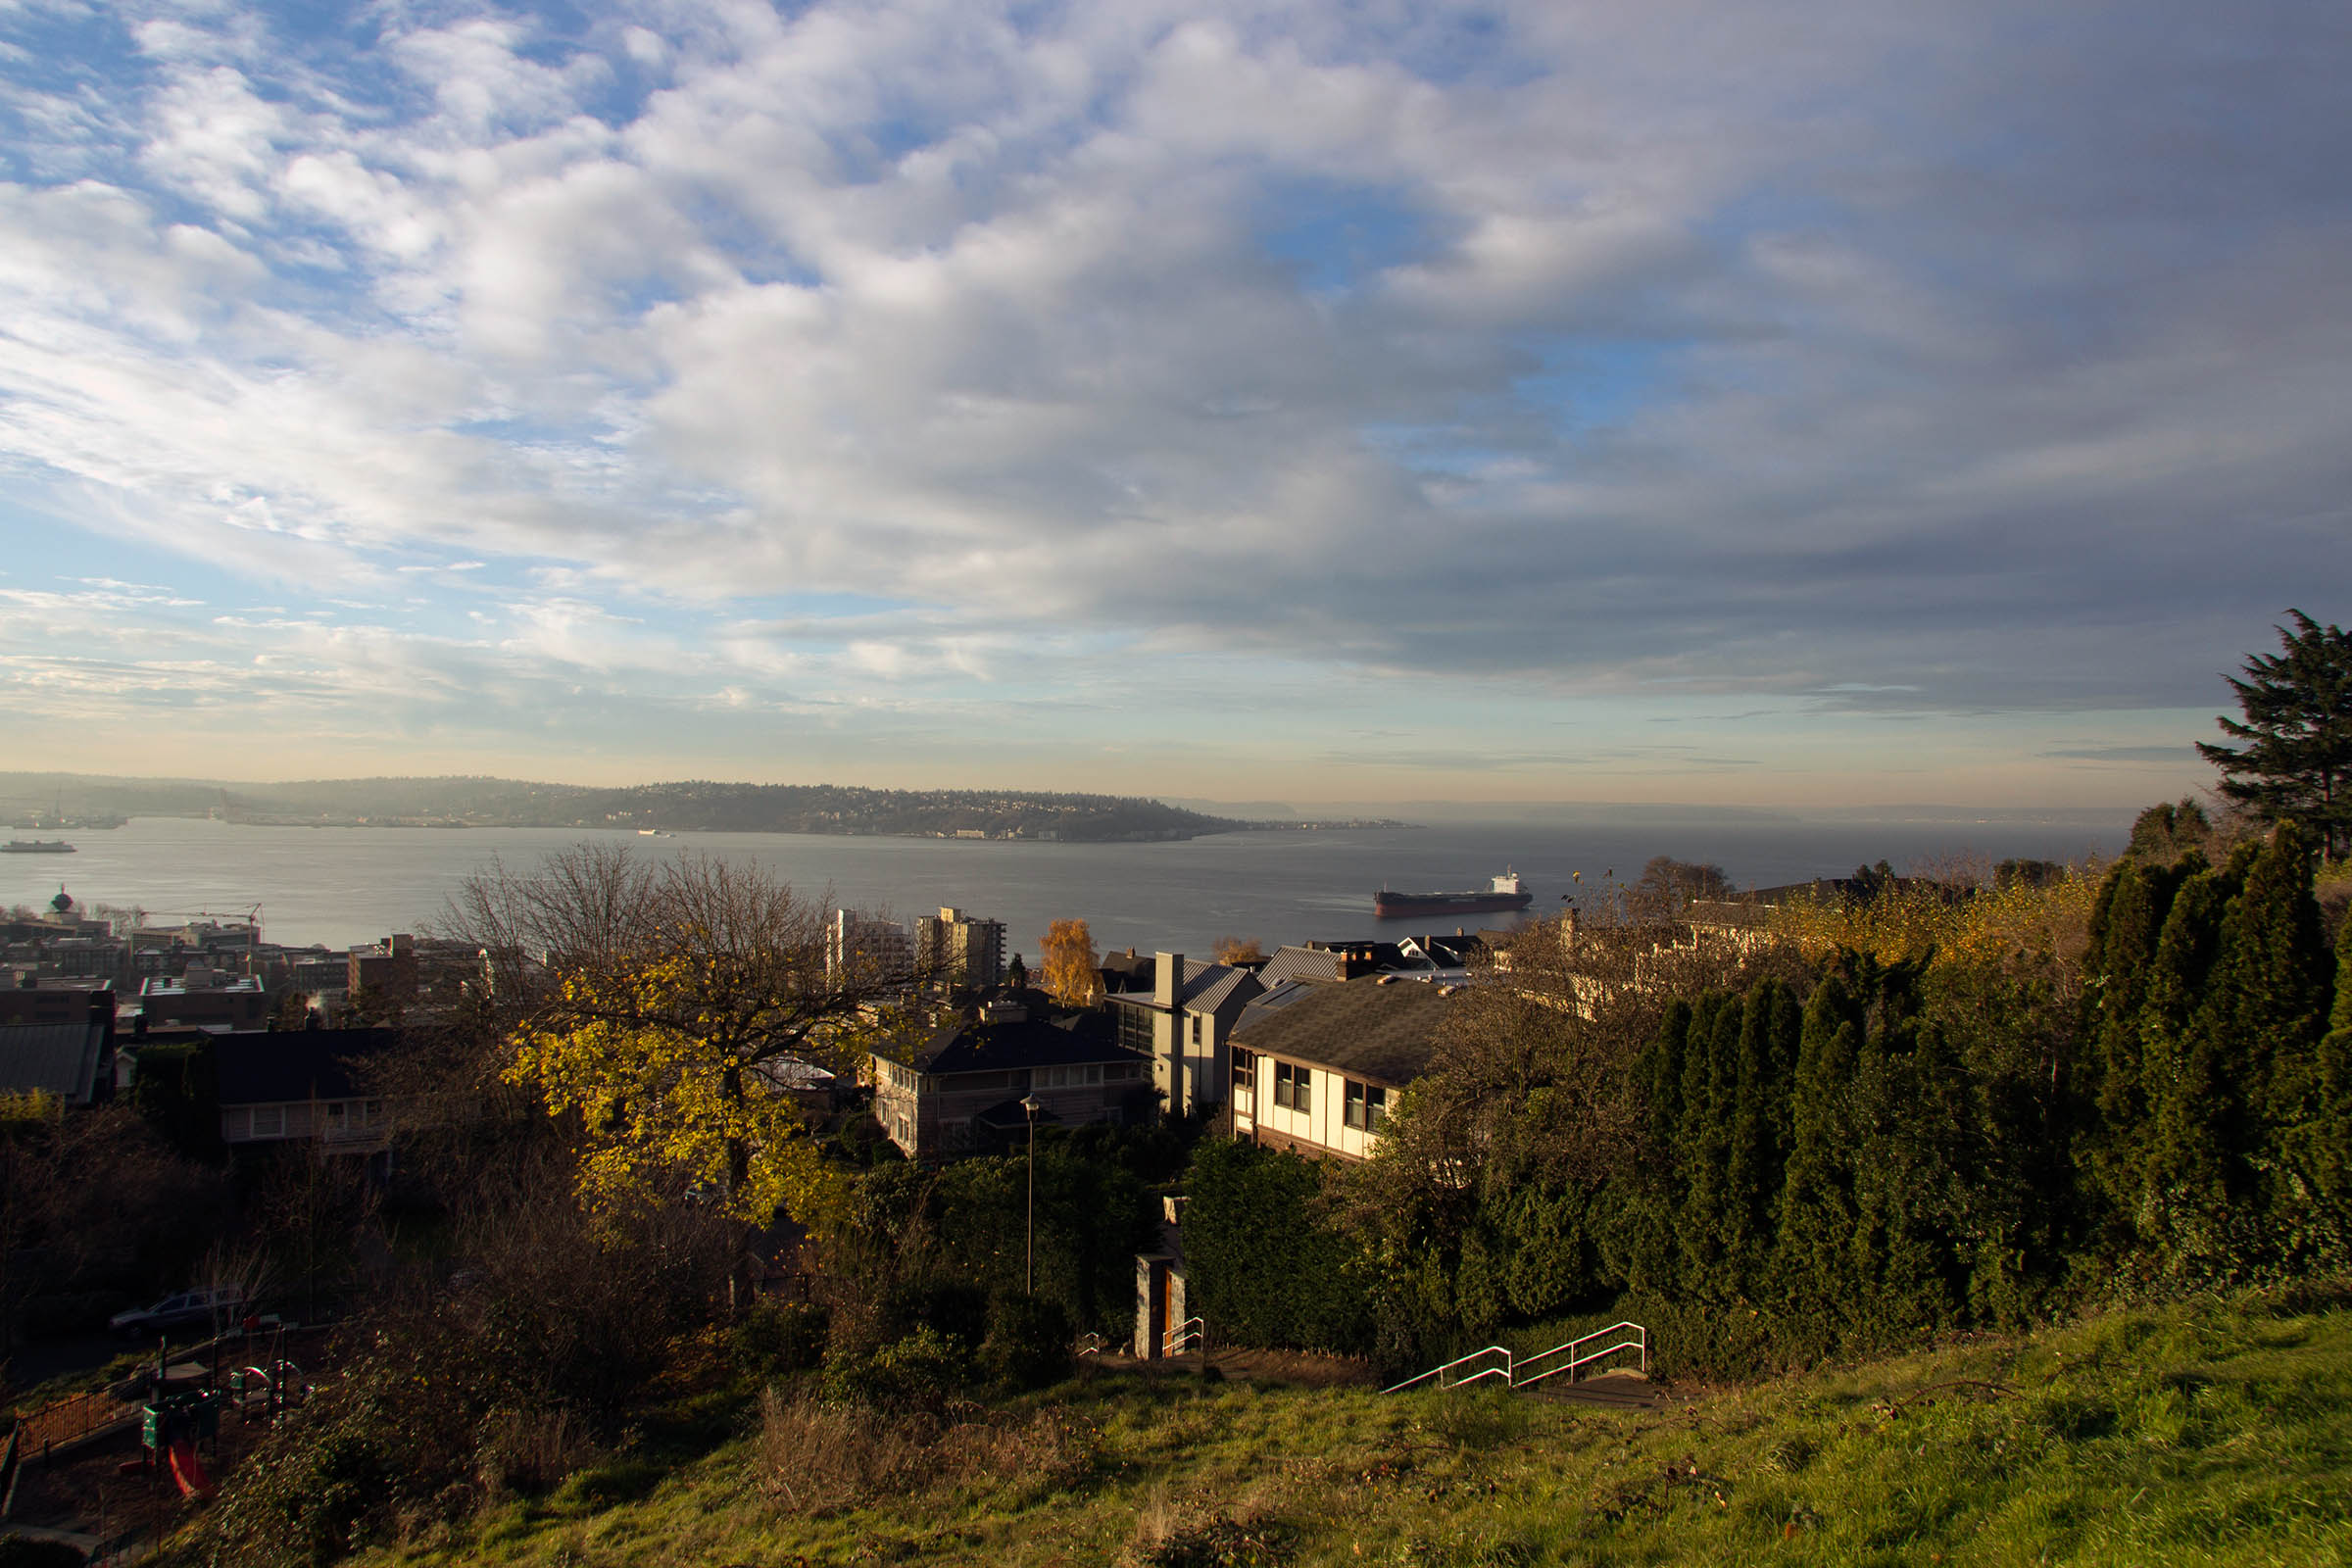 View of Puget Sound from Kerry Park, Seattle, WA, USA, 2013.